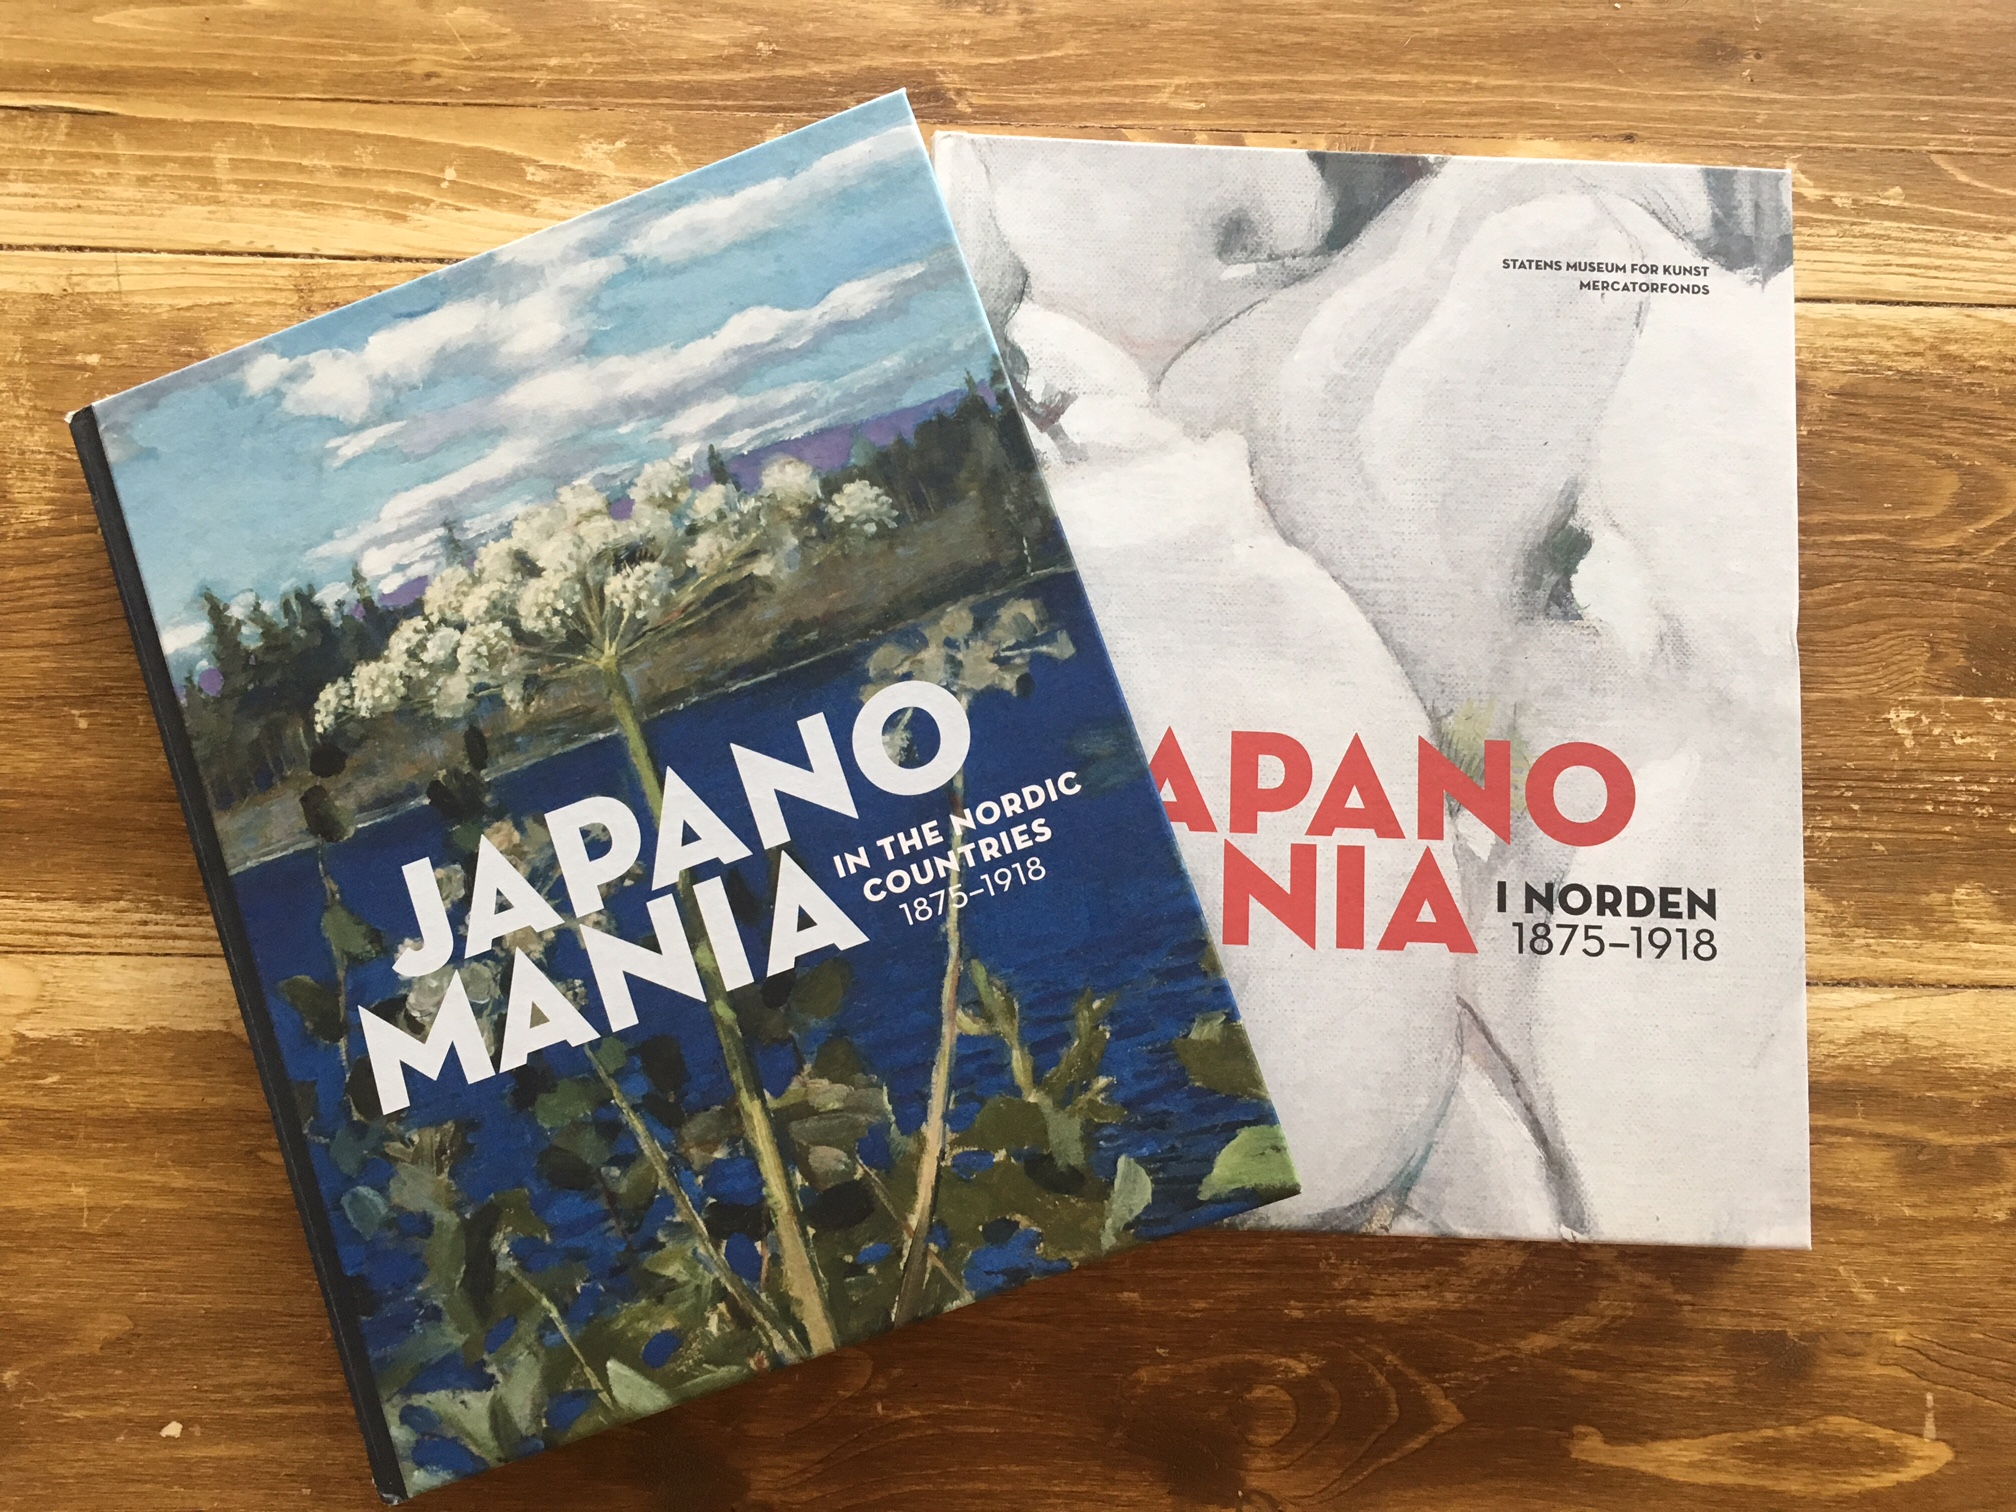 Japanomania in the Nordic Countries